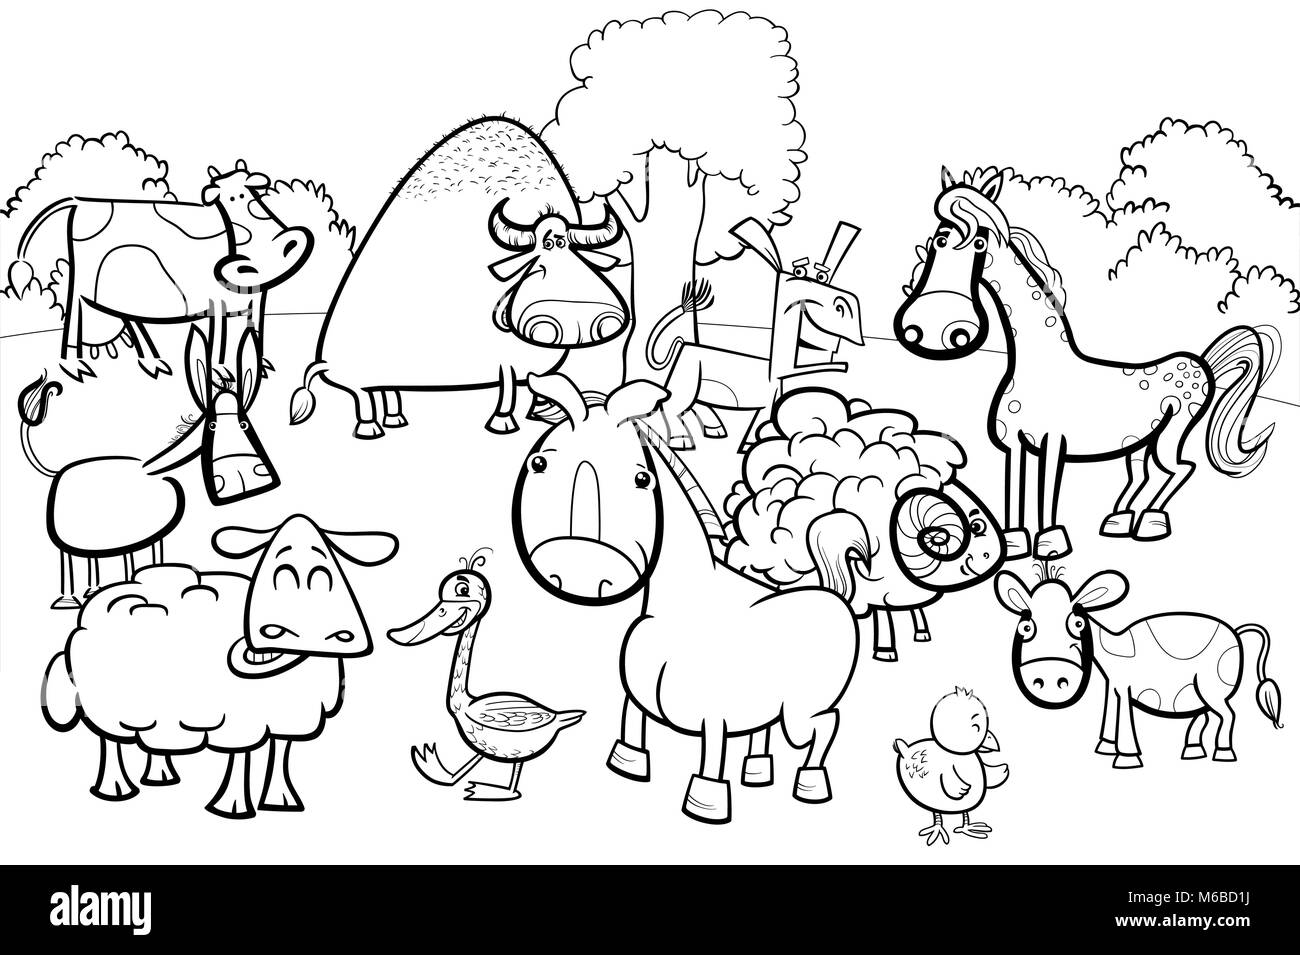 Black And White Cartoon Illustration Of Cute Farm Animal Characters